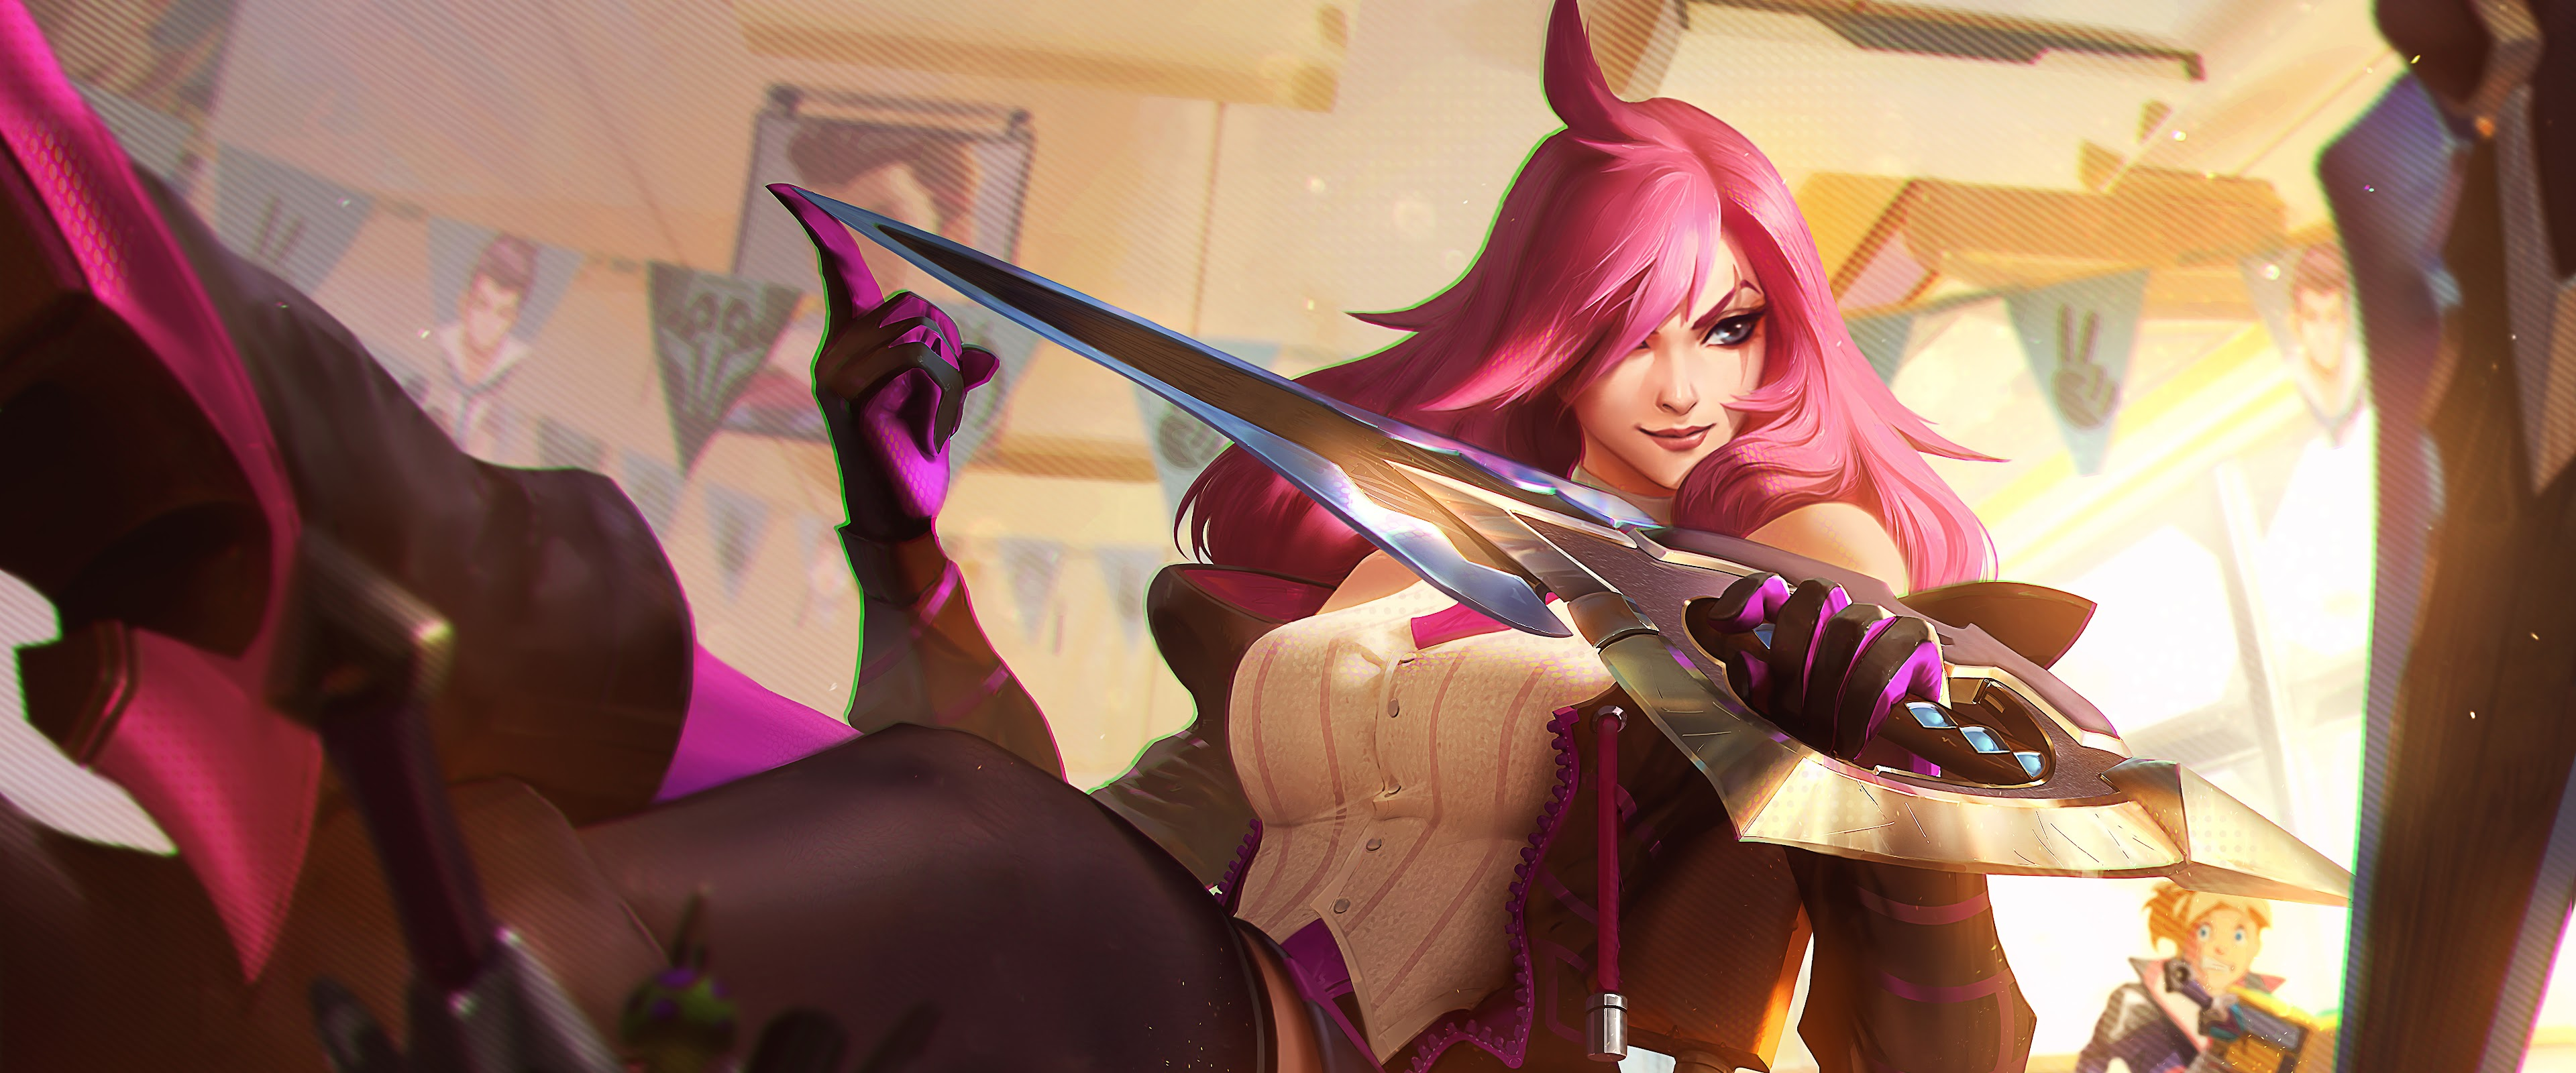 Battle Academia Katarina Splash Art Lol 8k Wallpaper 76